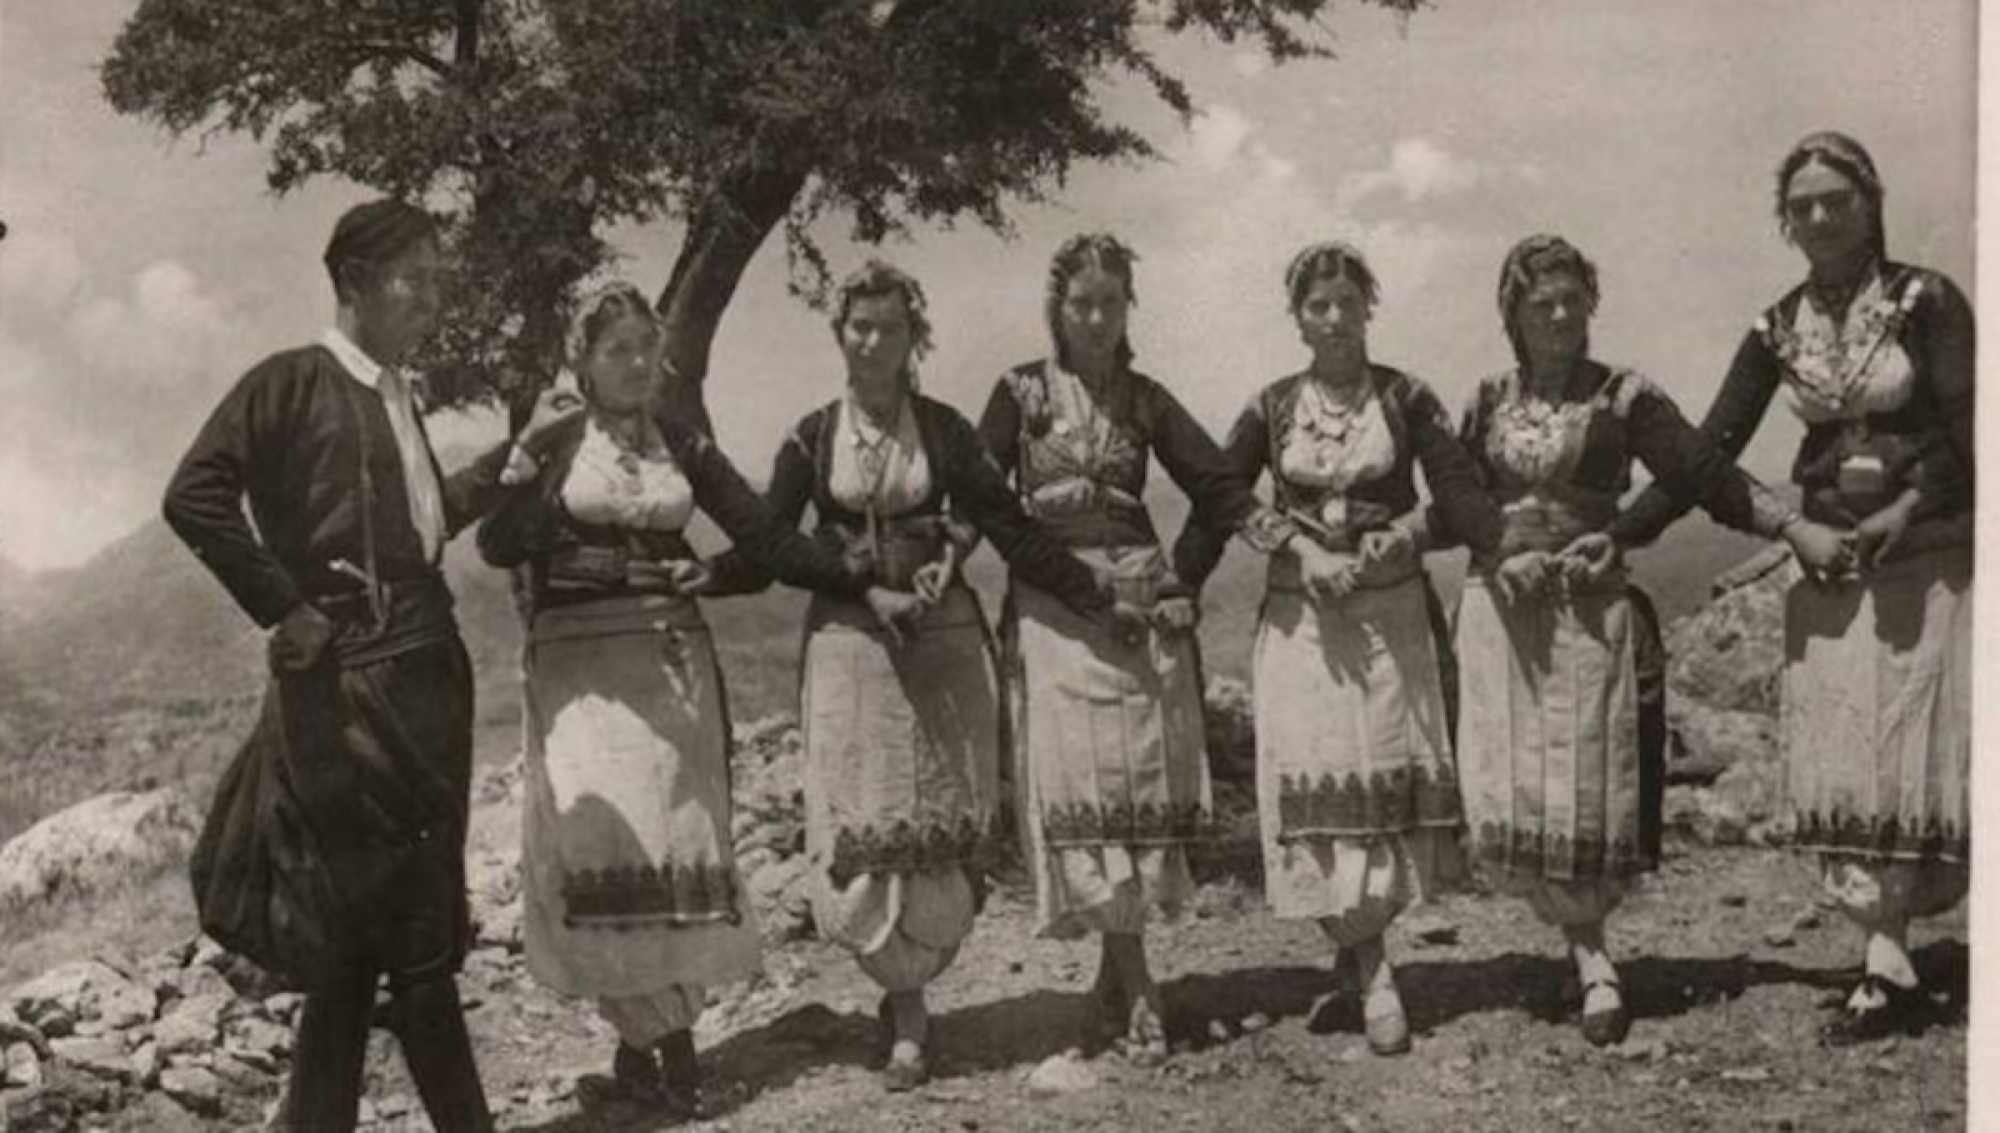 The Dancers of Crete